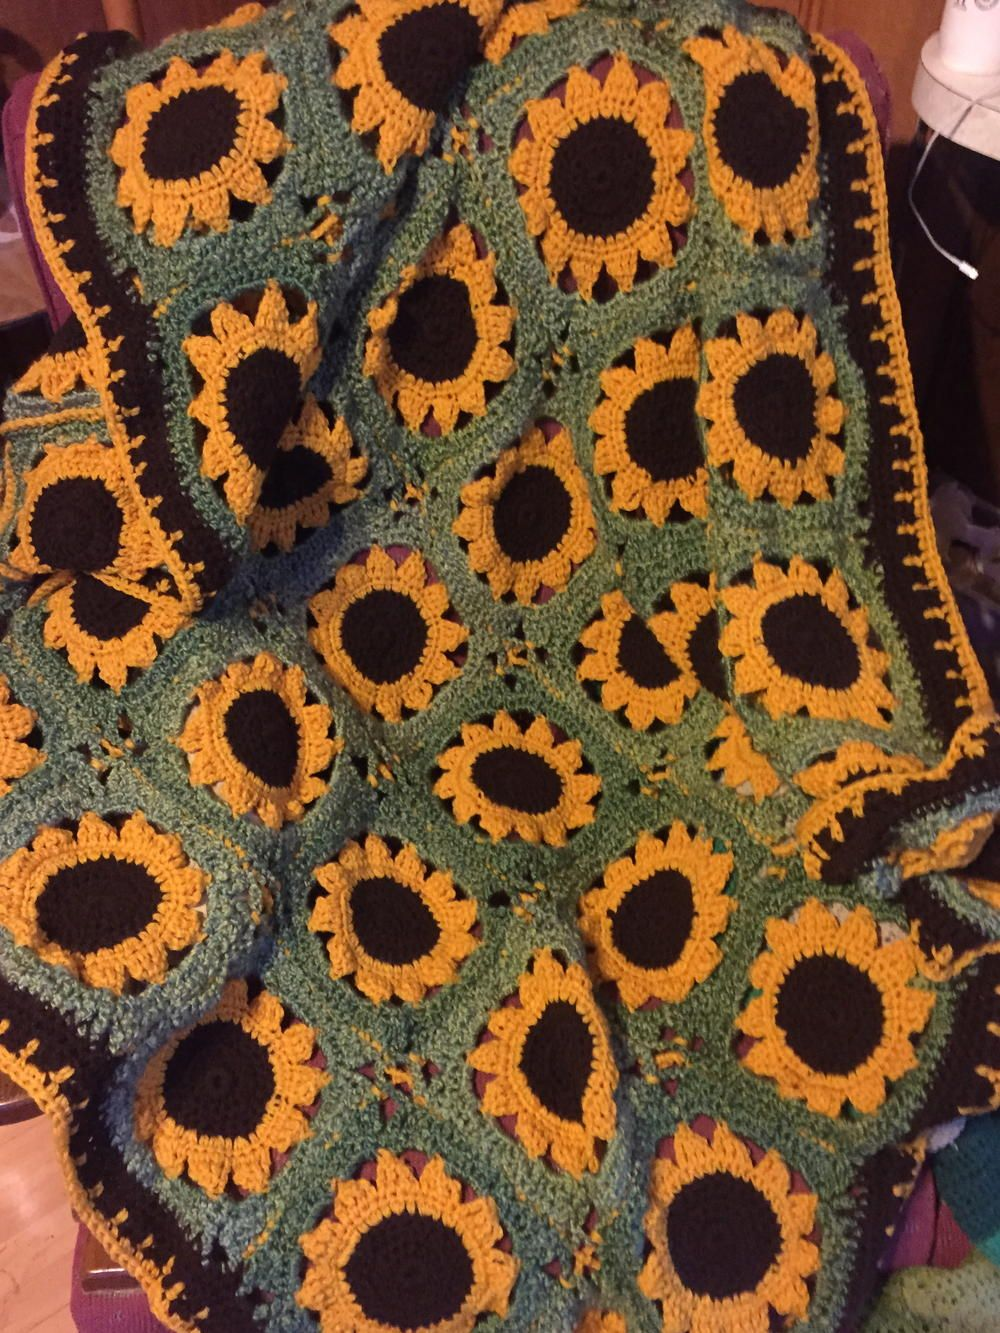 Crochet Sassy Sunflower Afghan Fiber Arts 6 Knit Crochet